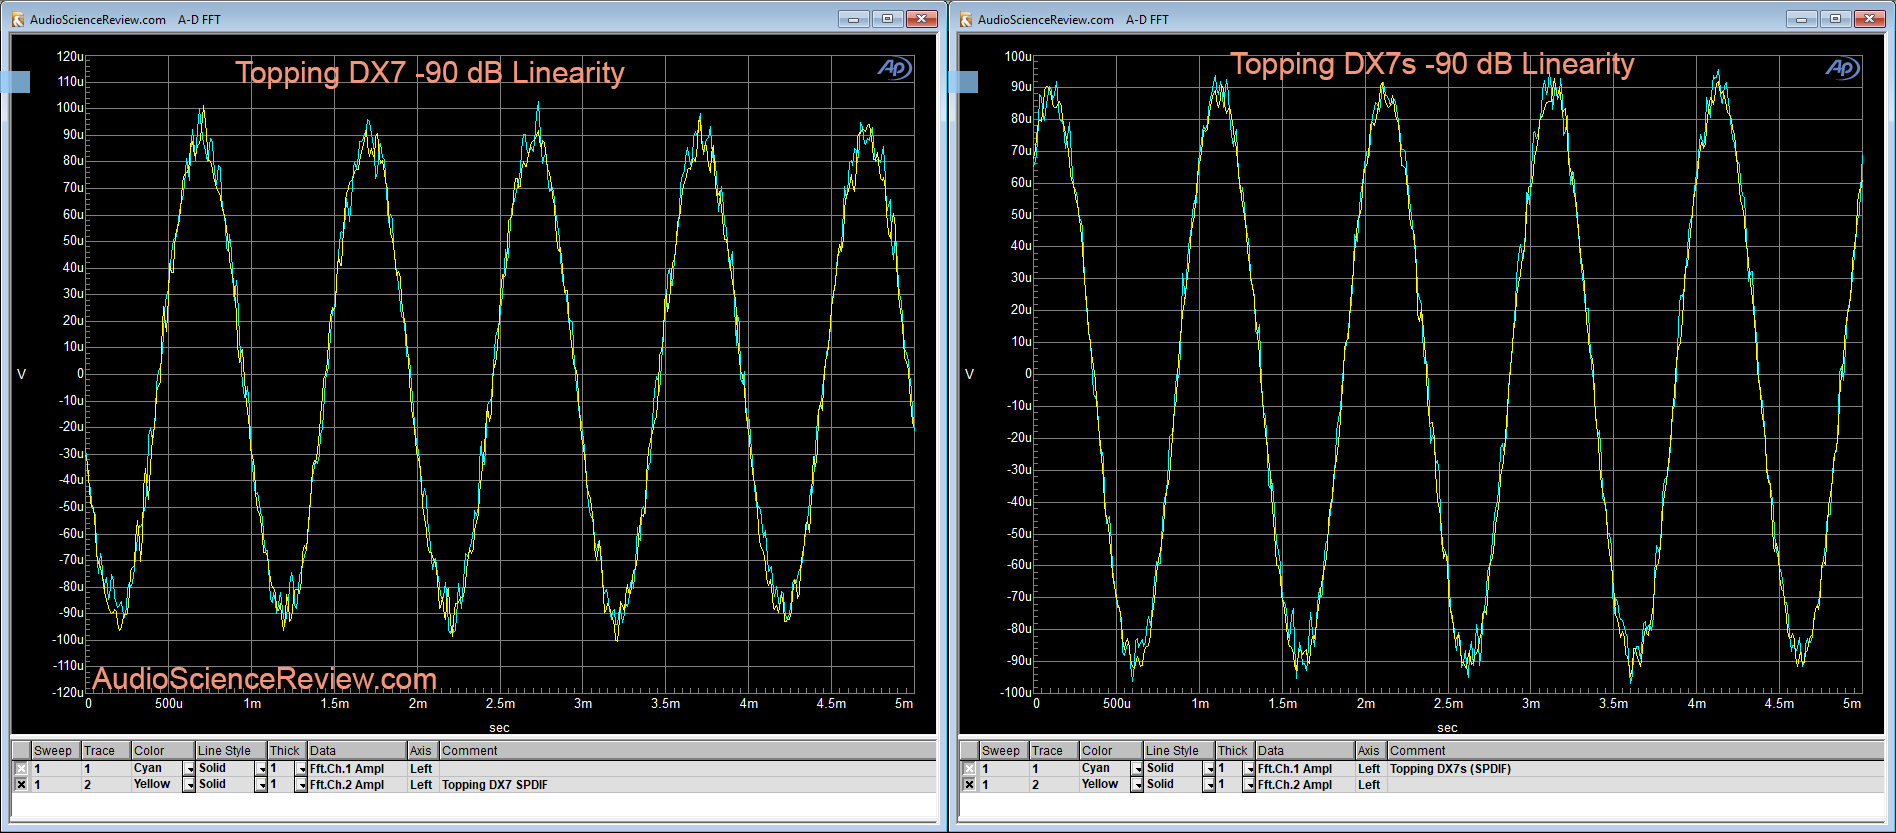 Topping DX7s DAC Linearity -90 dB Measurements.png